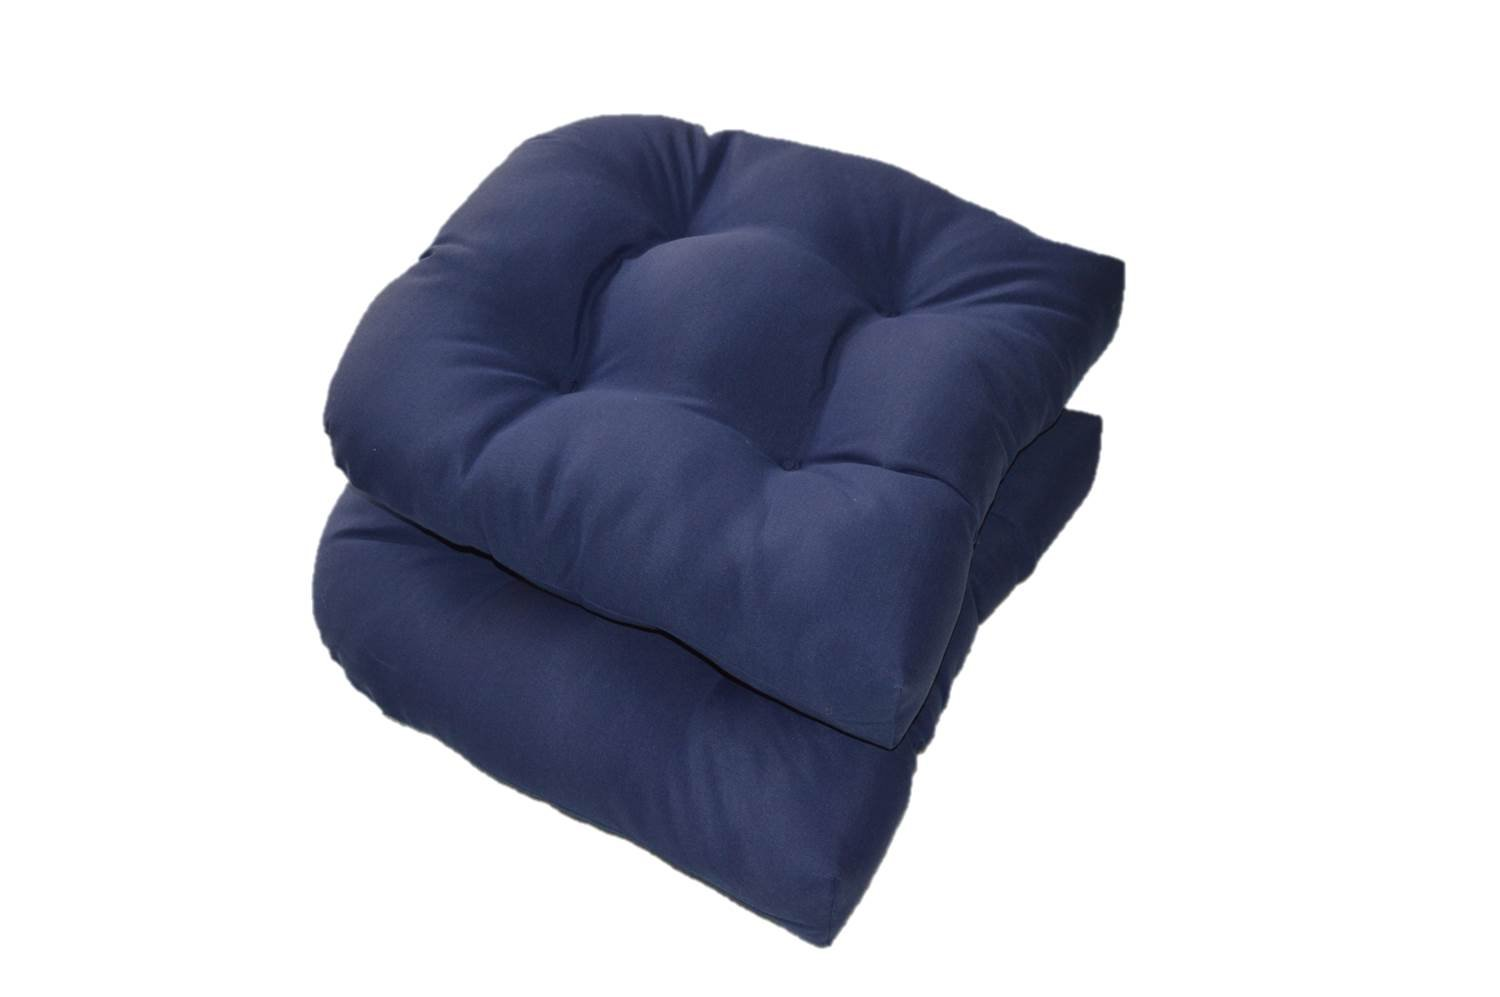 Superb Amazon.com: Set Of 2   Universal Tufted U Shape Cushions For Wicker Chair  Seat   Solid Navy Blue   Indoor / Outdoor: Home U0026 Kitchen